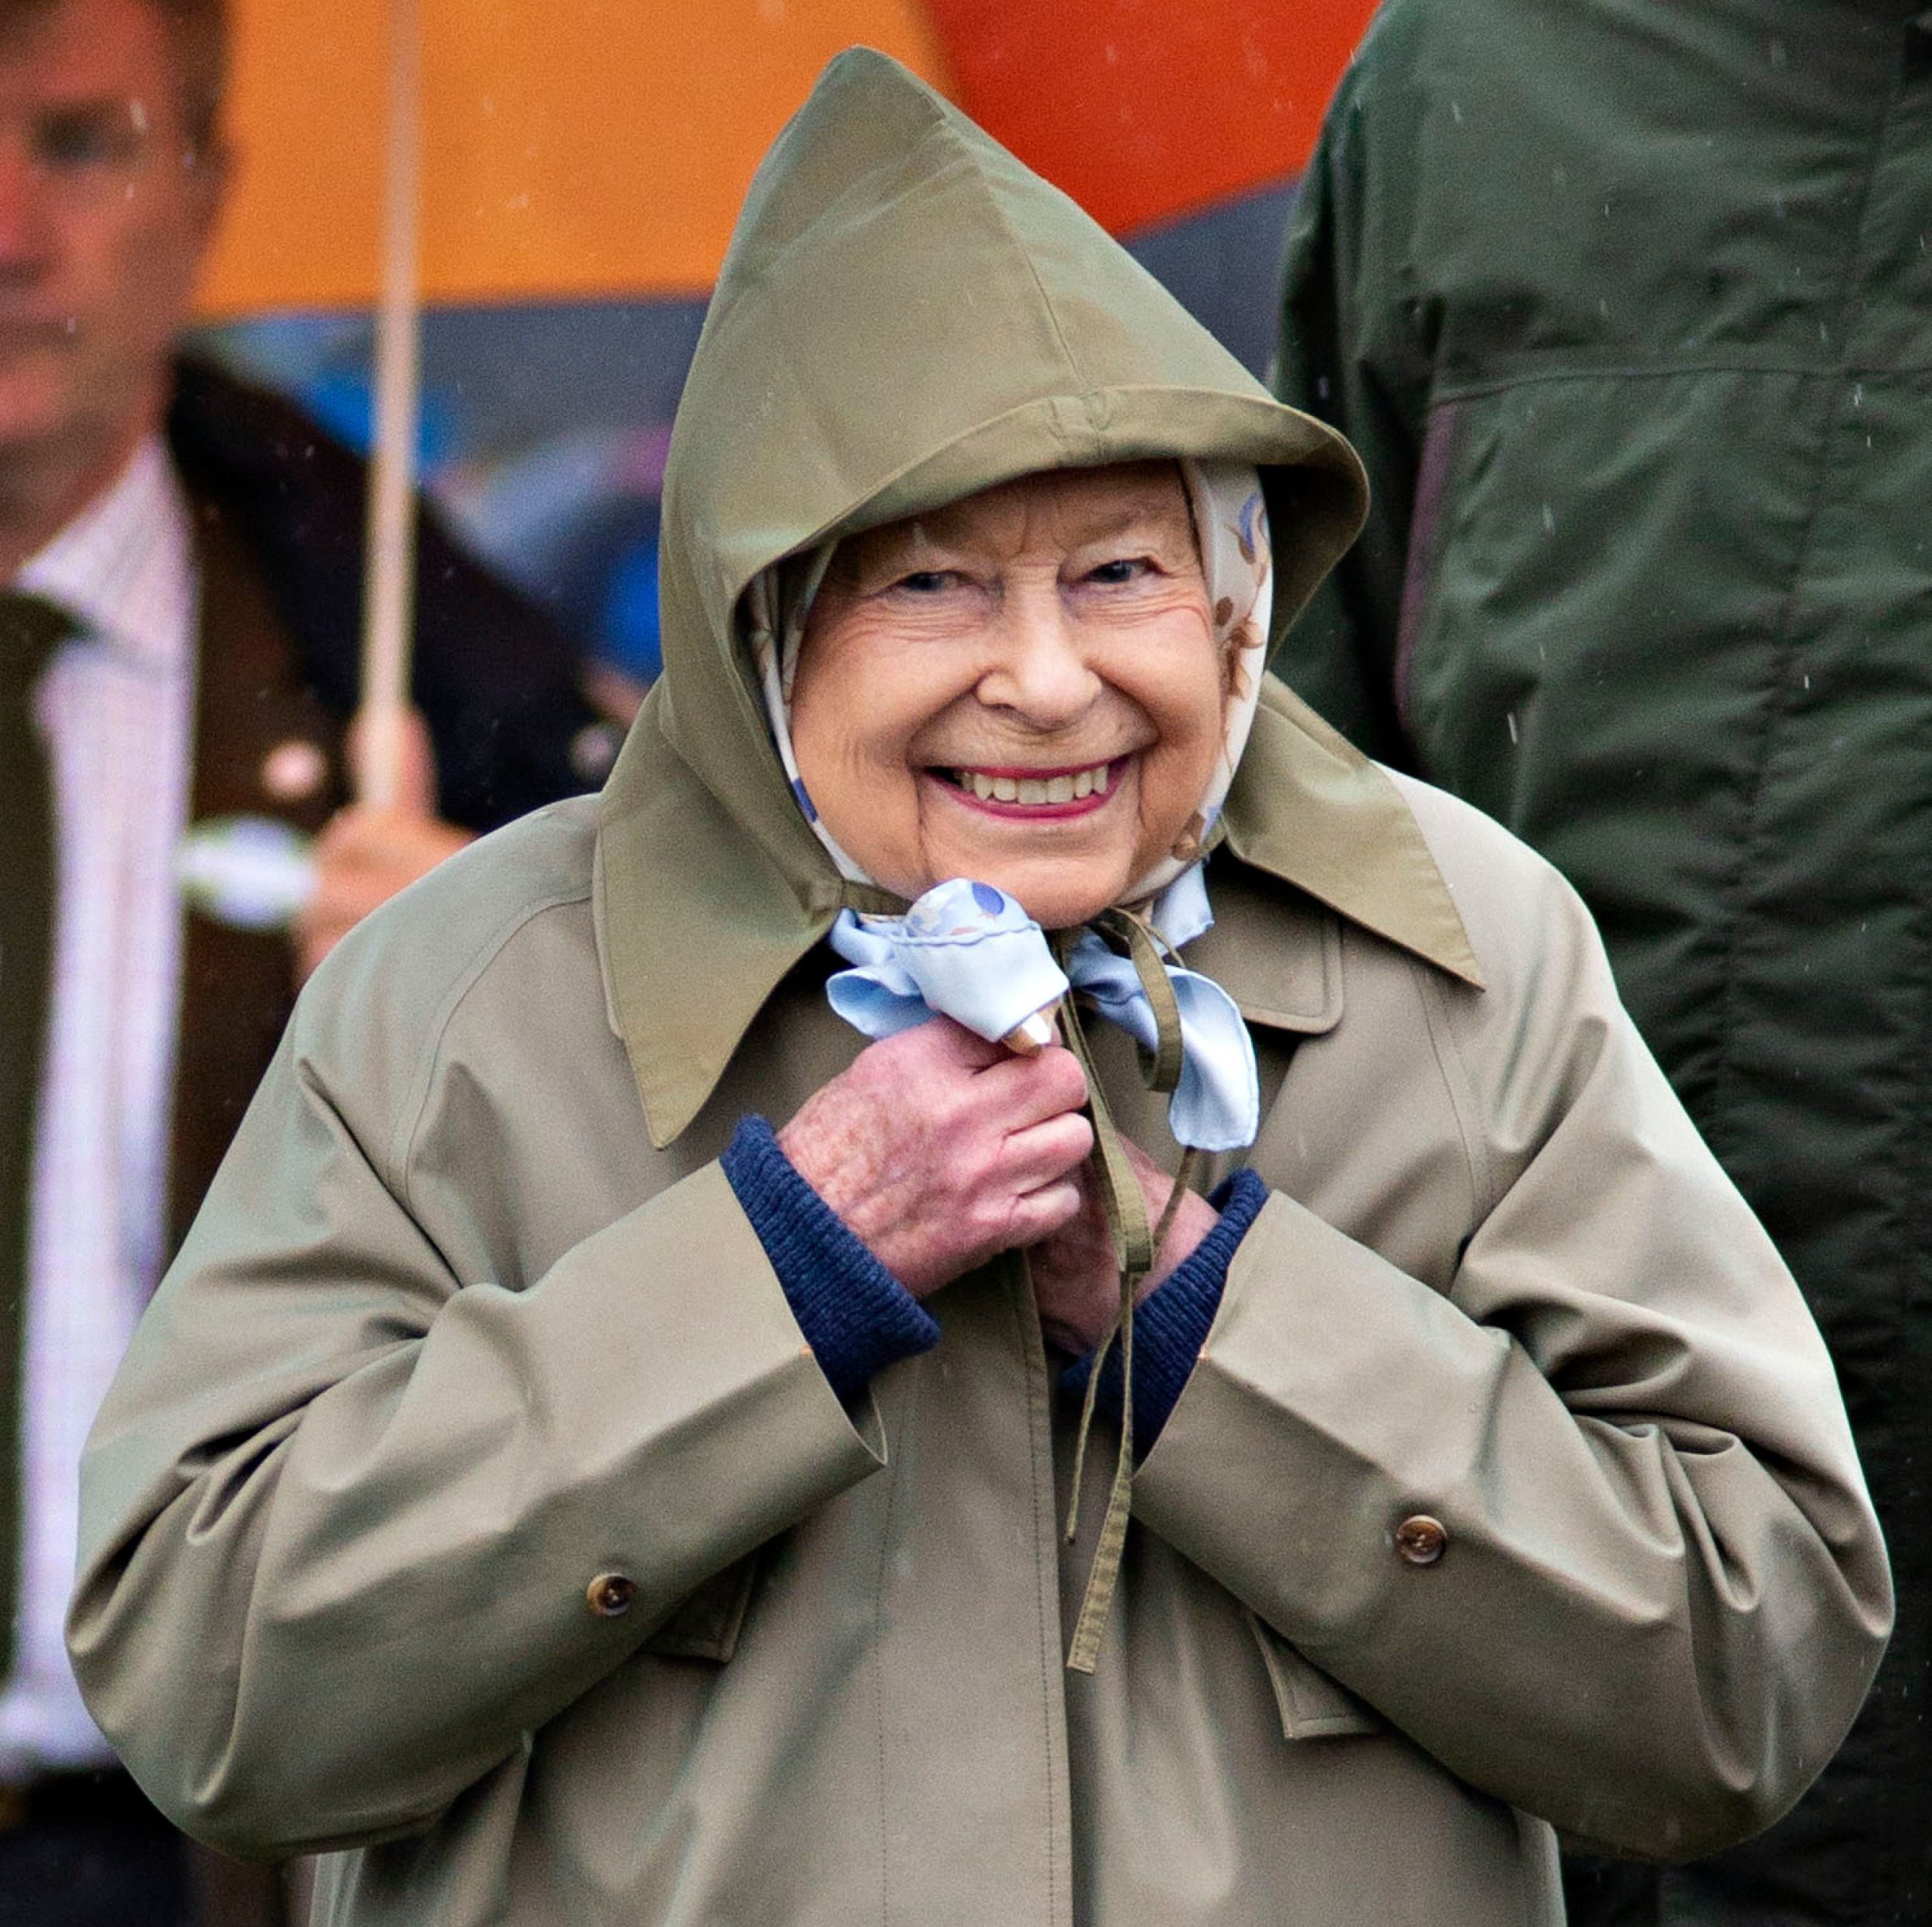 Mandatory Credit: Photo by DAVID HARTLEY/Shutterstock (10231429g) Queen Elizabeth II leaves after watching her horses in the 4 Year Old Hunter Class 76th Royal Windsor Horse Show, Windsor, Berkshire, UK - 08 May 2019